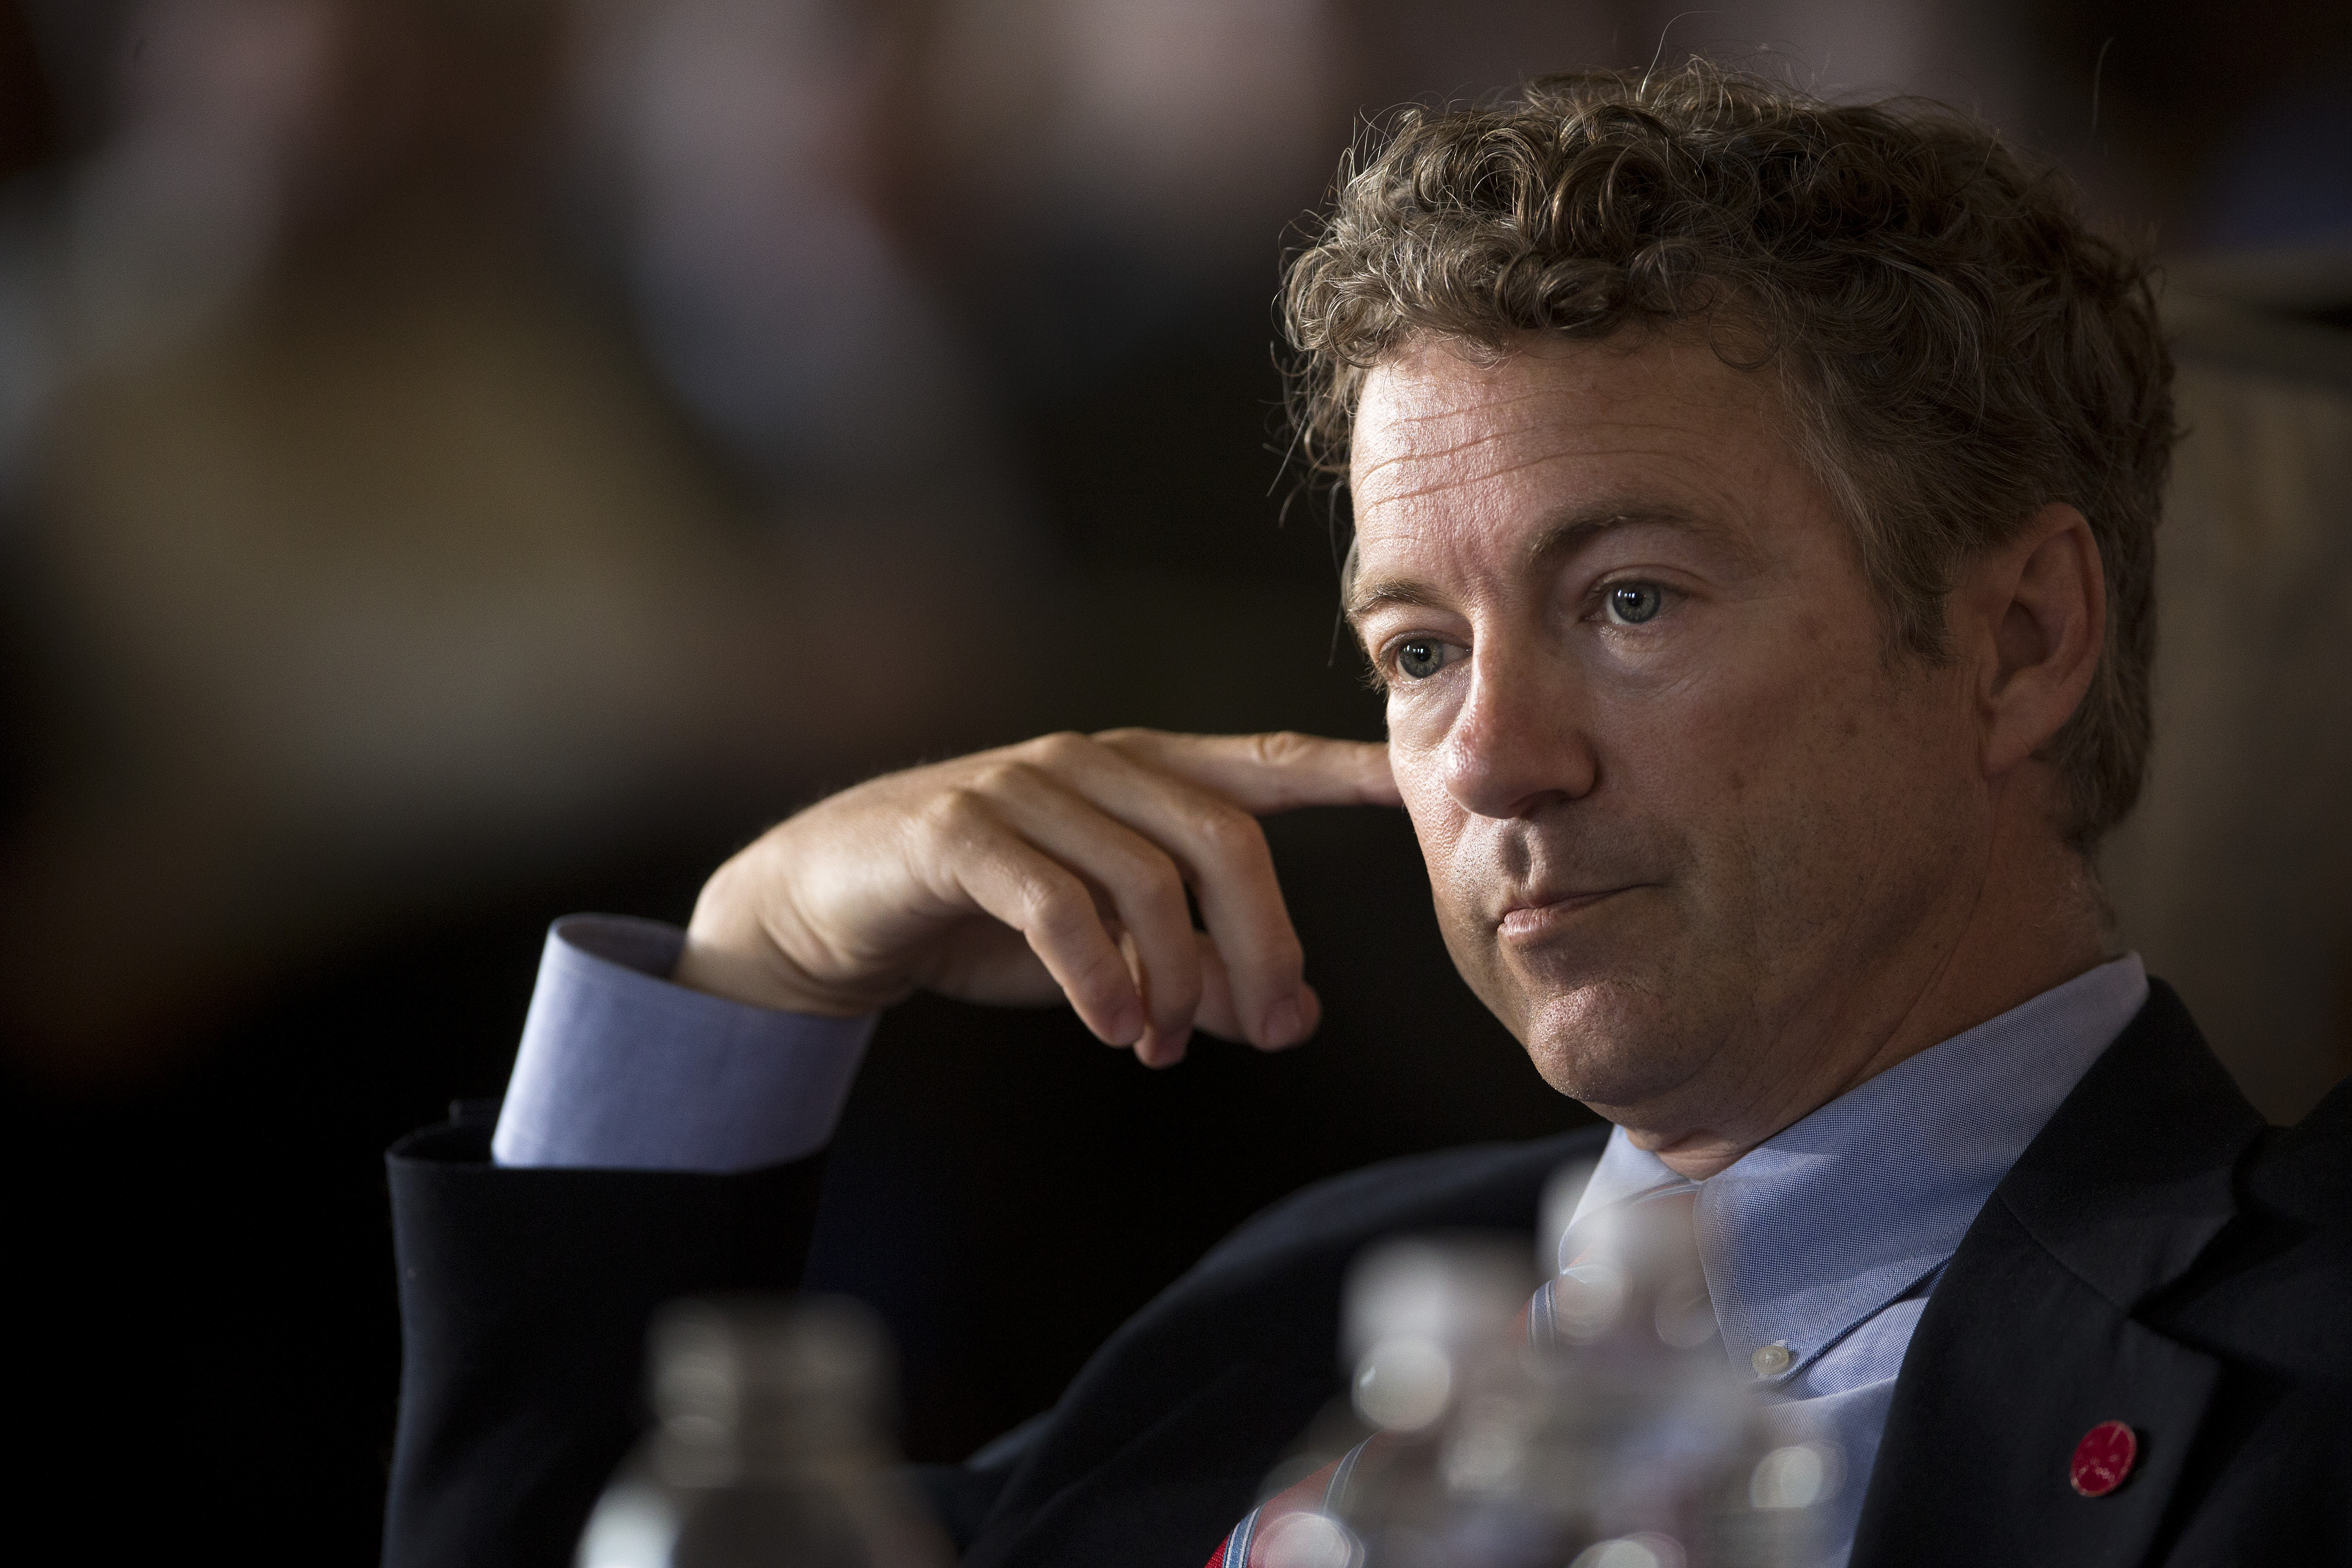 'Carmen Sandiego' Singer Issues Cease and Desist to Rand Paul